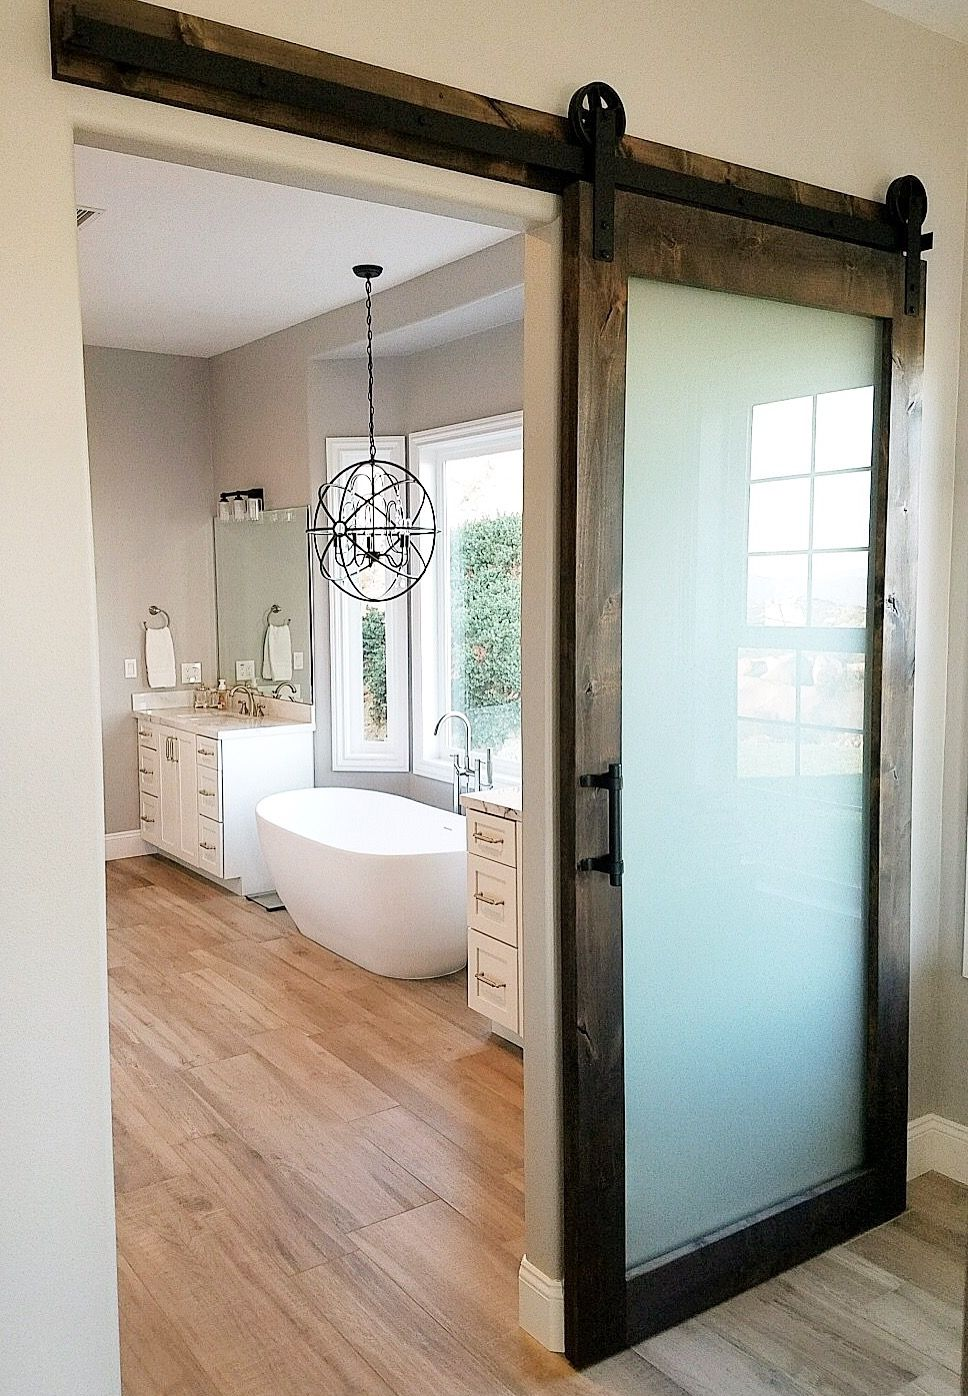 Frosted Glass Knotty Alder Barn Door With Hardware For A Master Bedroom Bathroom Glass Barn Doors Barn Doors Sliding Master Bedroom Bathroom